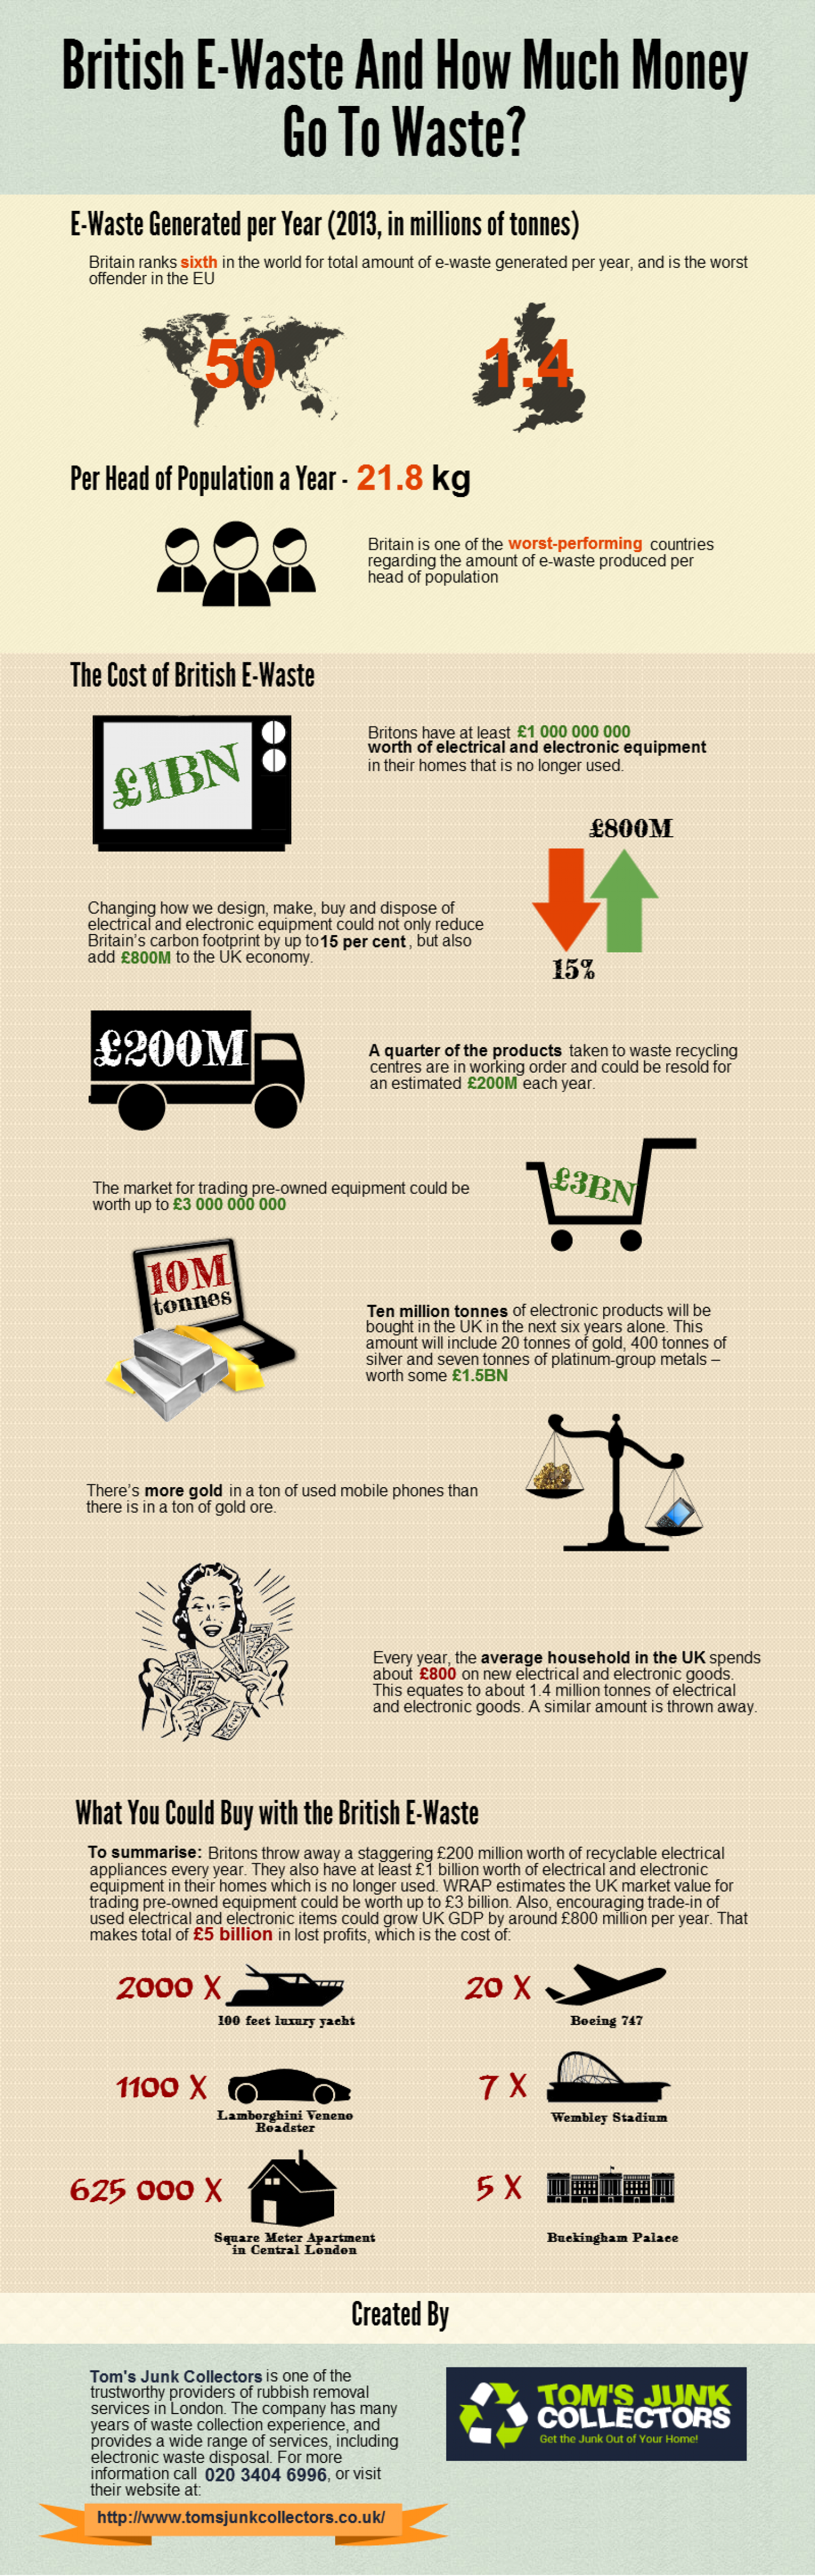 British E-Waste And How Much Money Go To Waste? Infographic